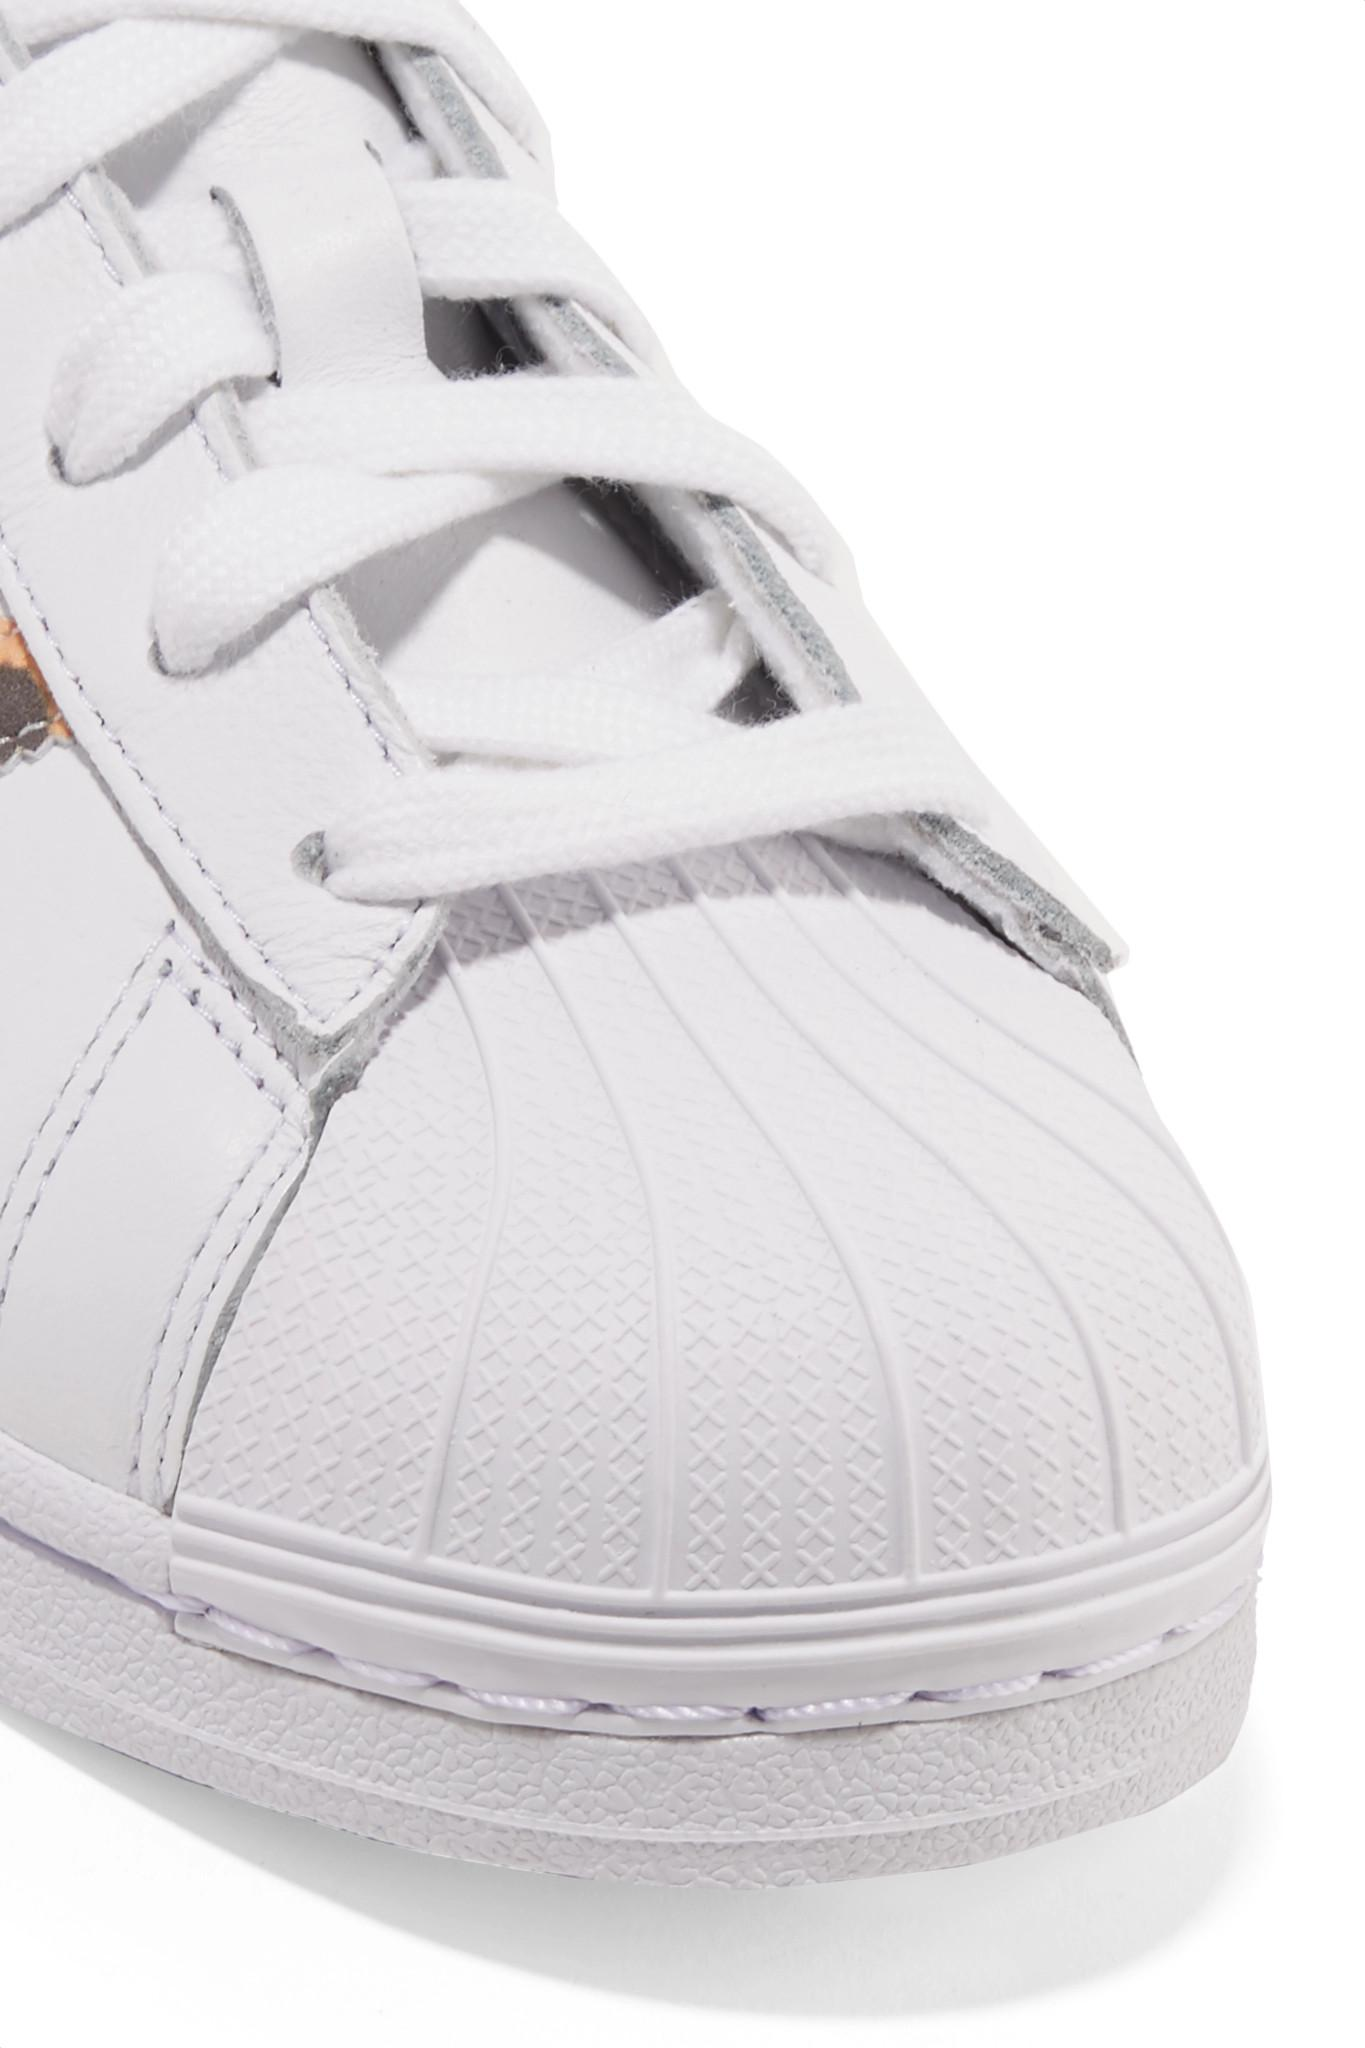 huge selection of 52fb2 3691c Adidas Originals White Superstar Leopard Print-trimmed Leather Sneakers